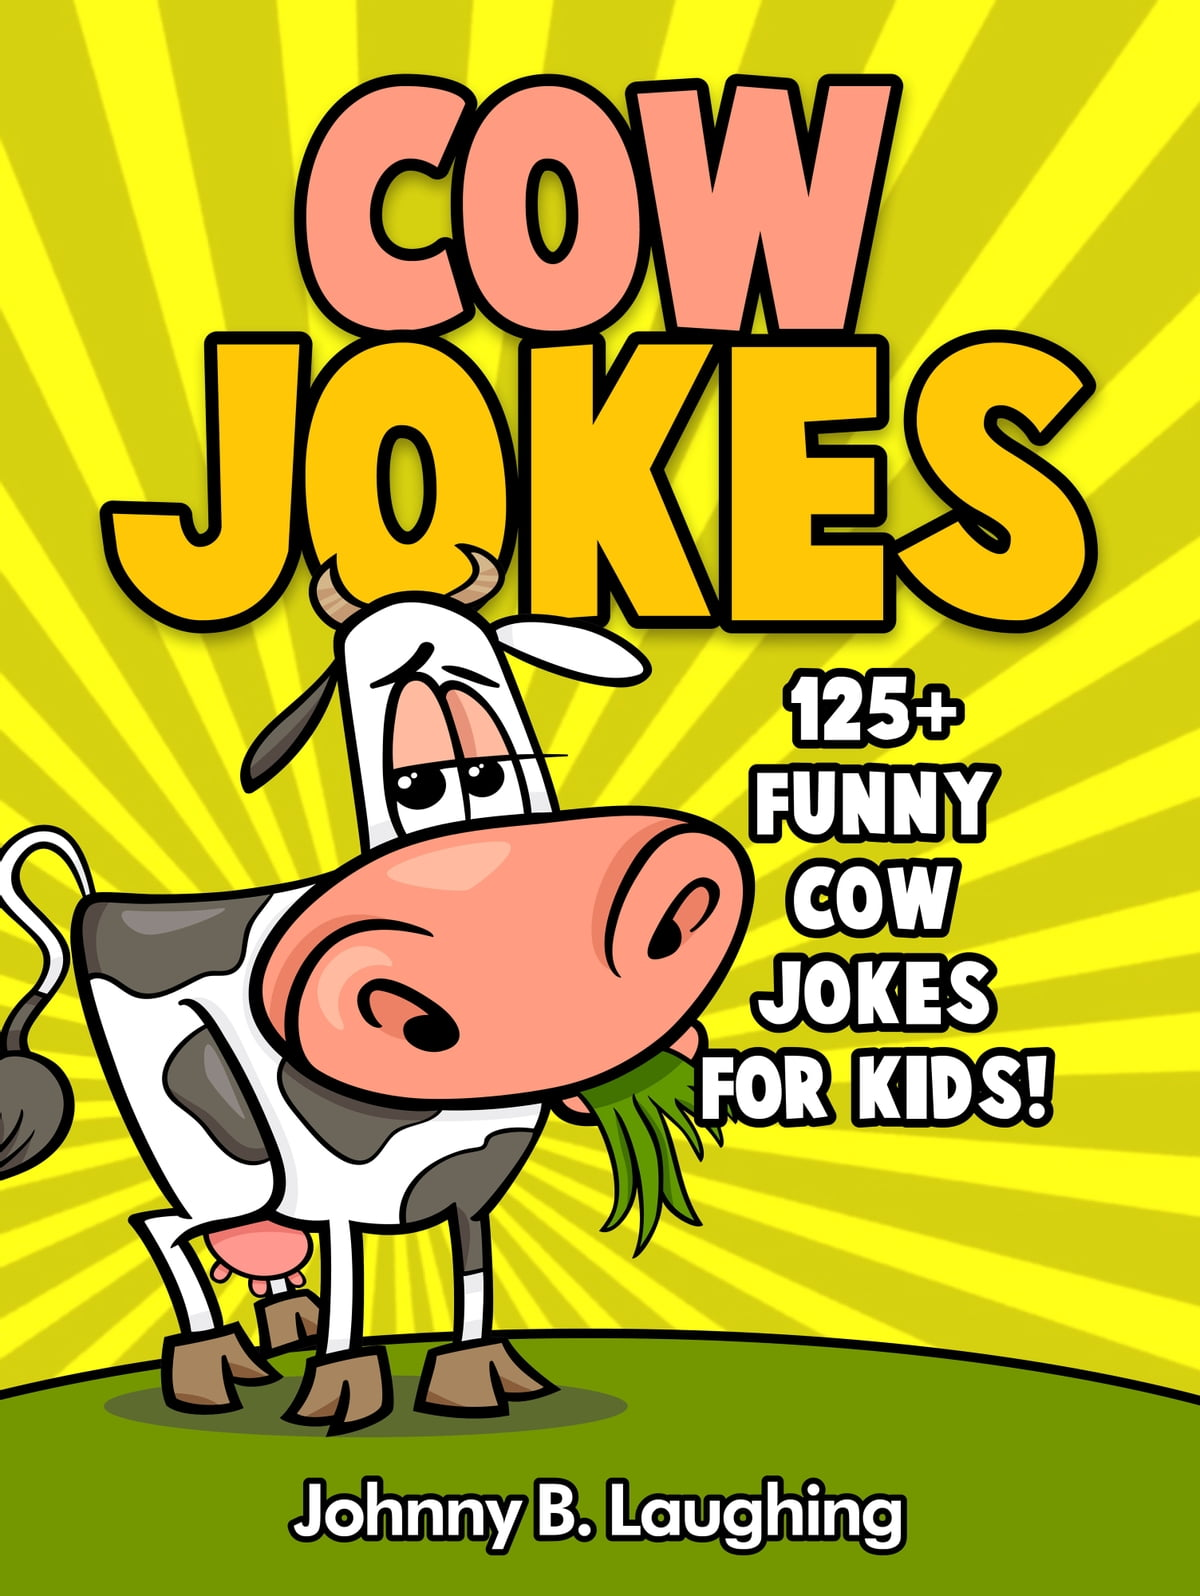 Funny cow pictures jokes